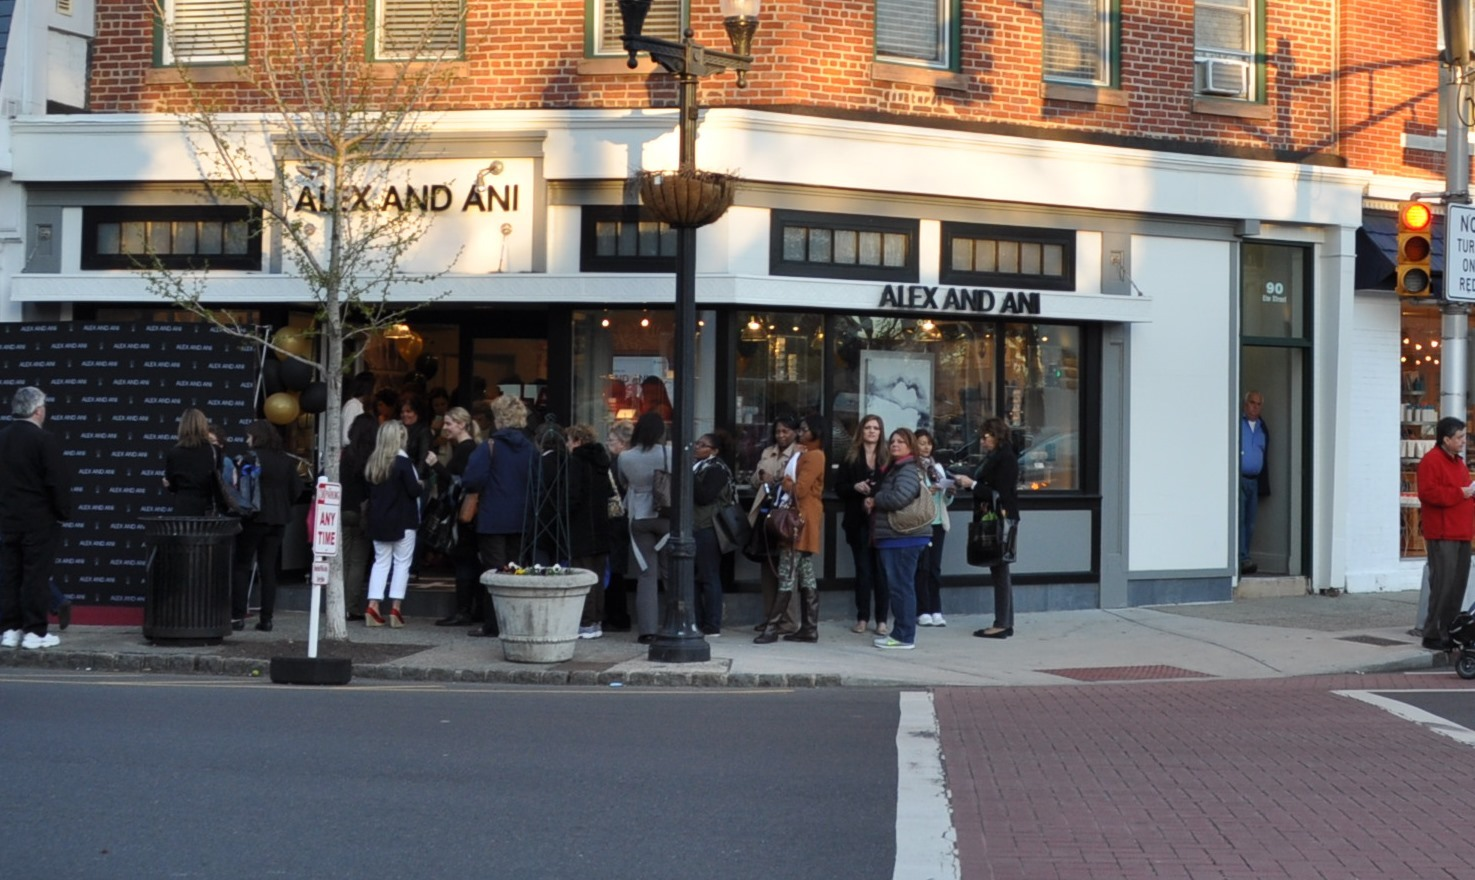 Westfield's Alex and Ani Jewelry Shop Celebrates Grand Opening During Girls' Night Out